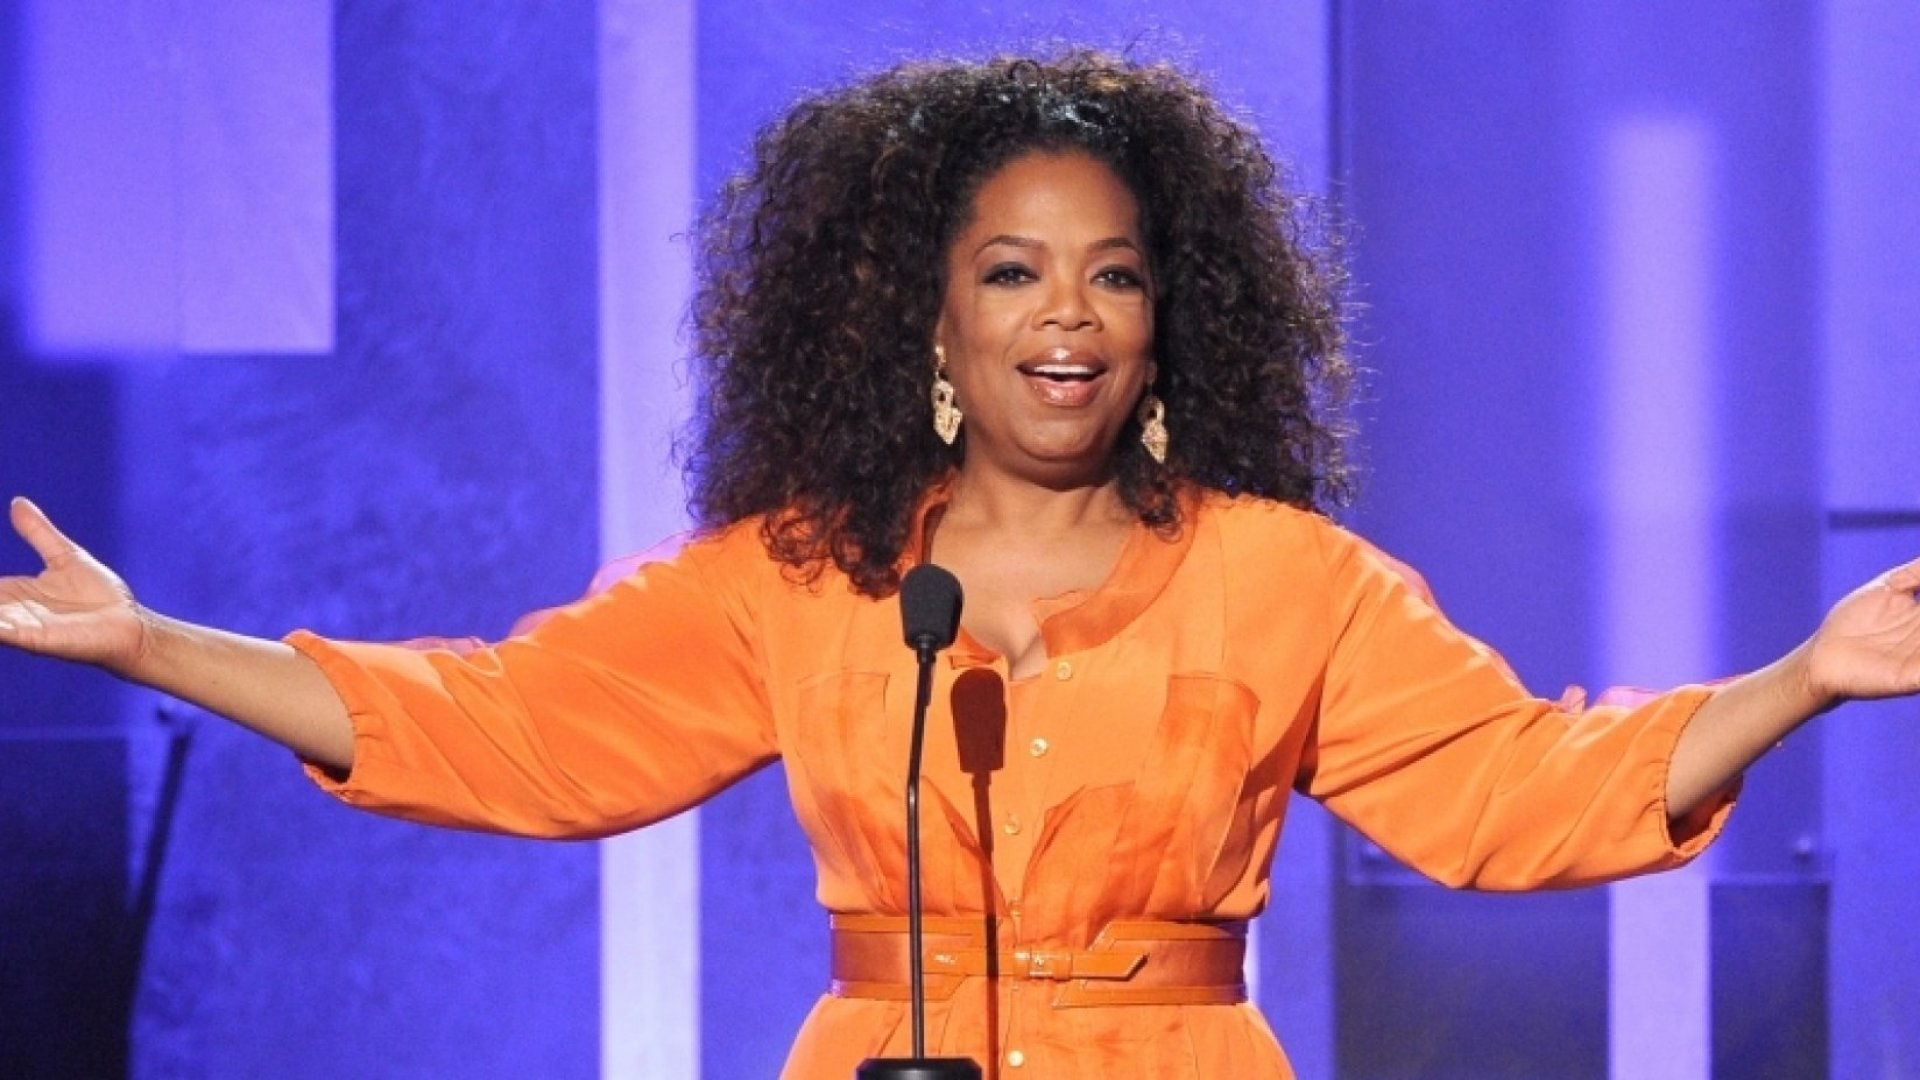 19 Empowering Quotes From Oprah Winfrey